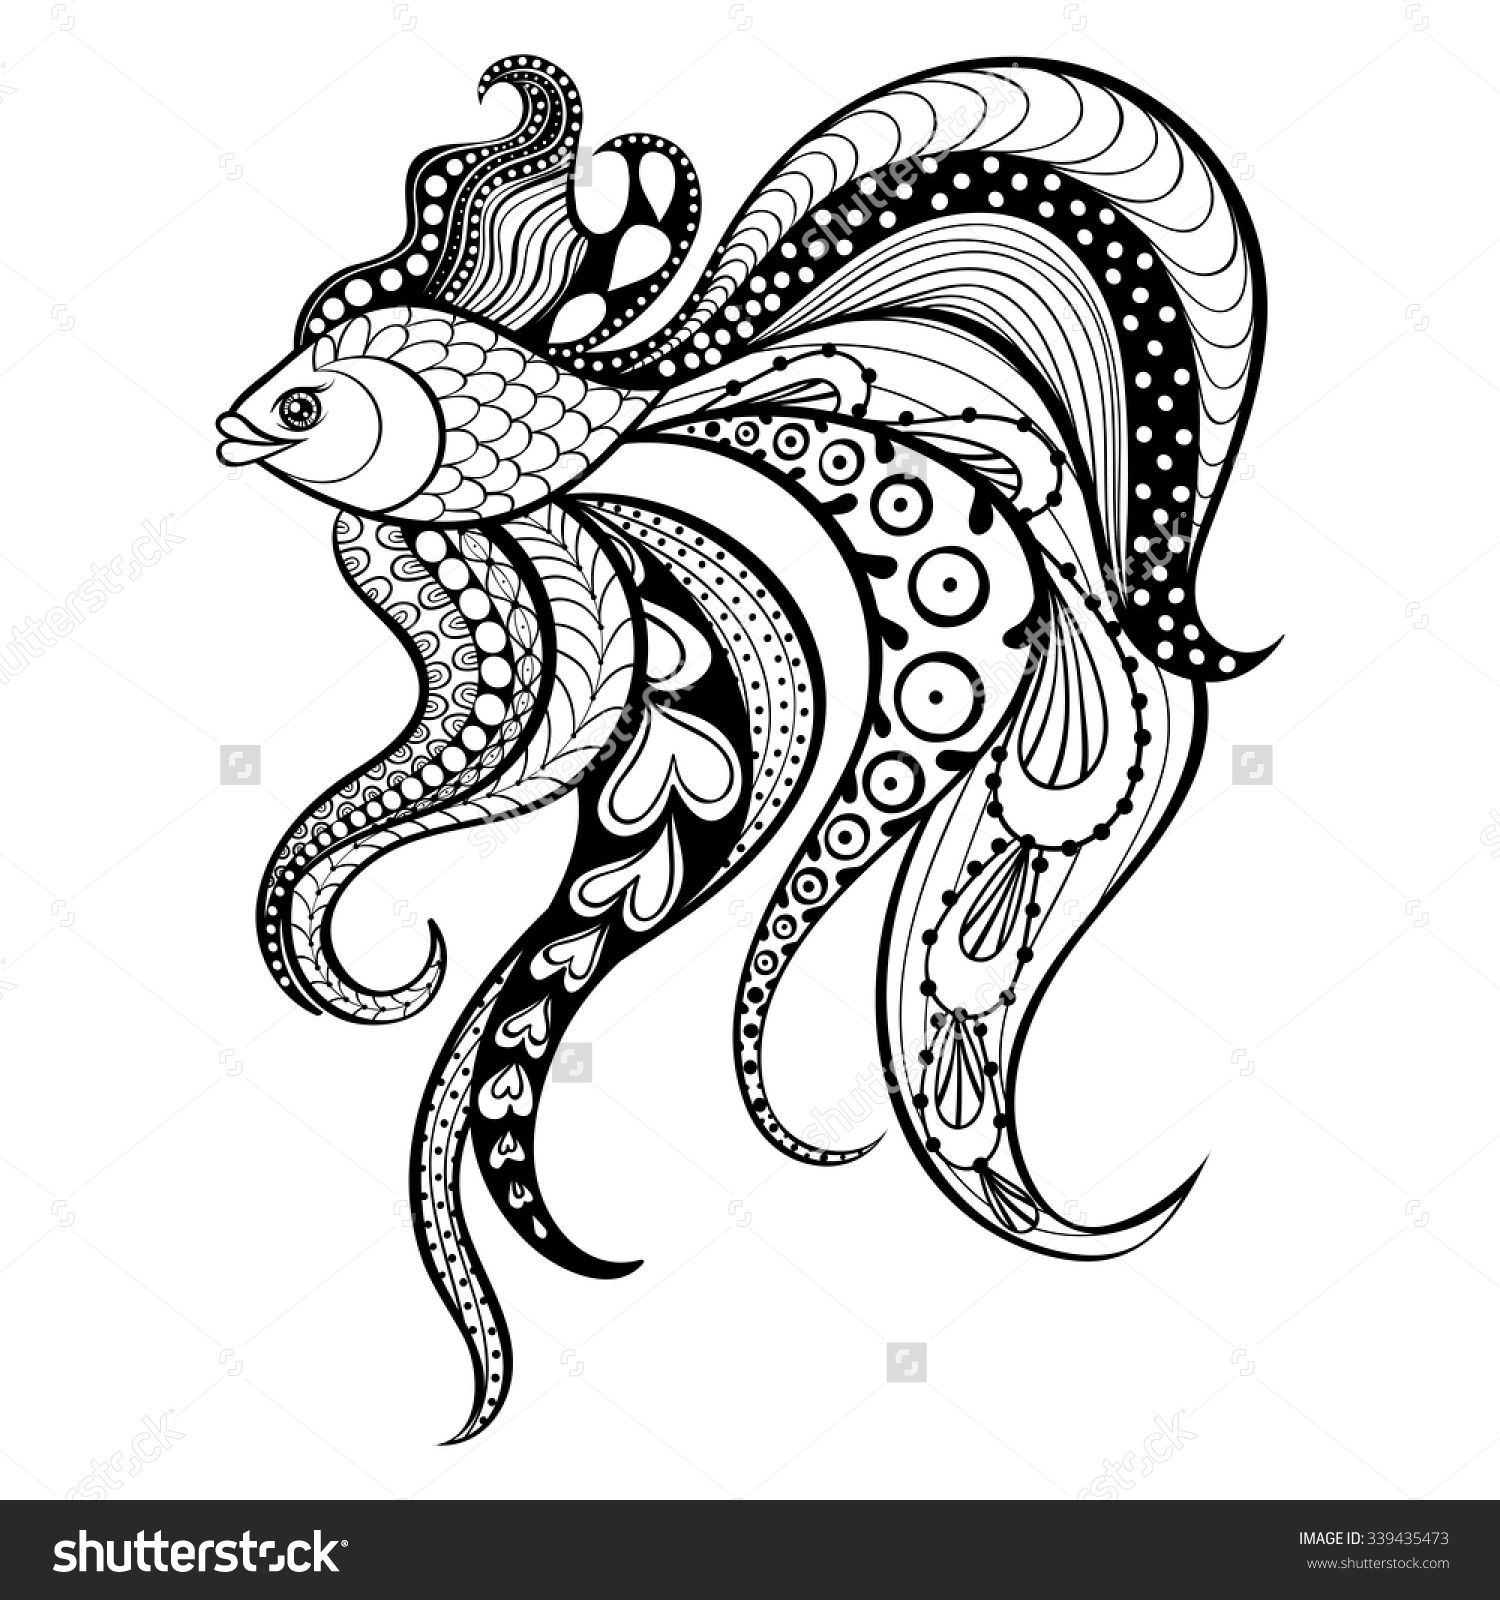 Zentangle Vector Gold Fish For Tattoo In Boho Hipster